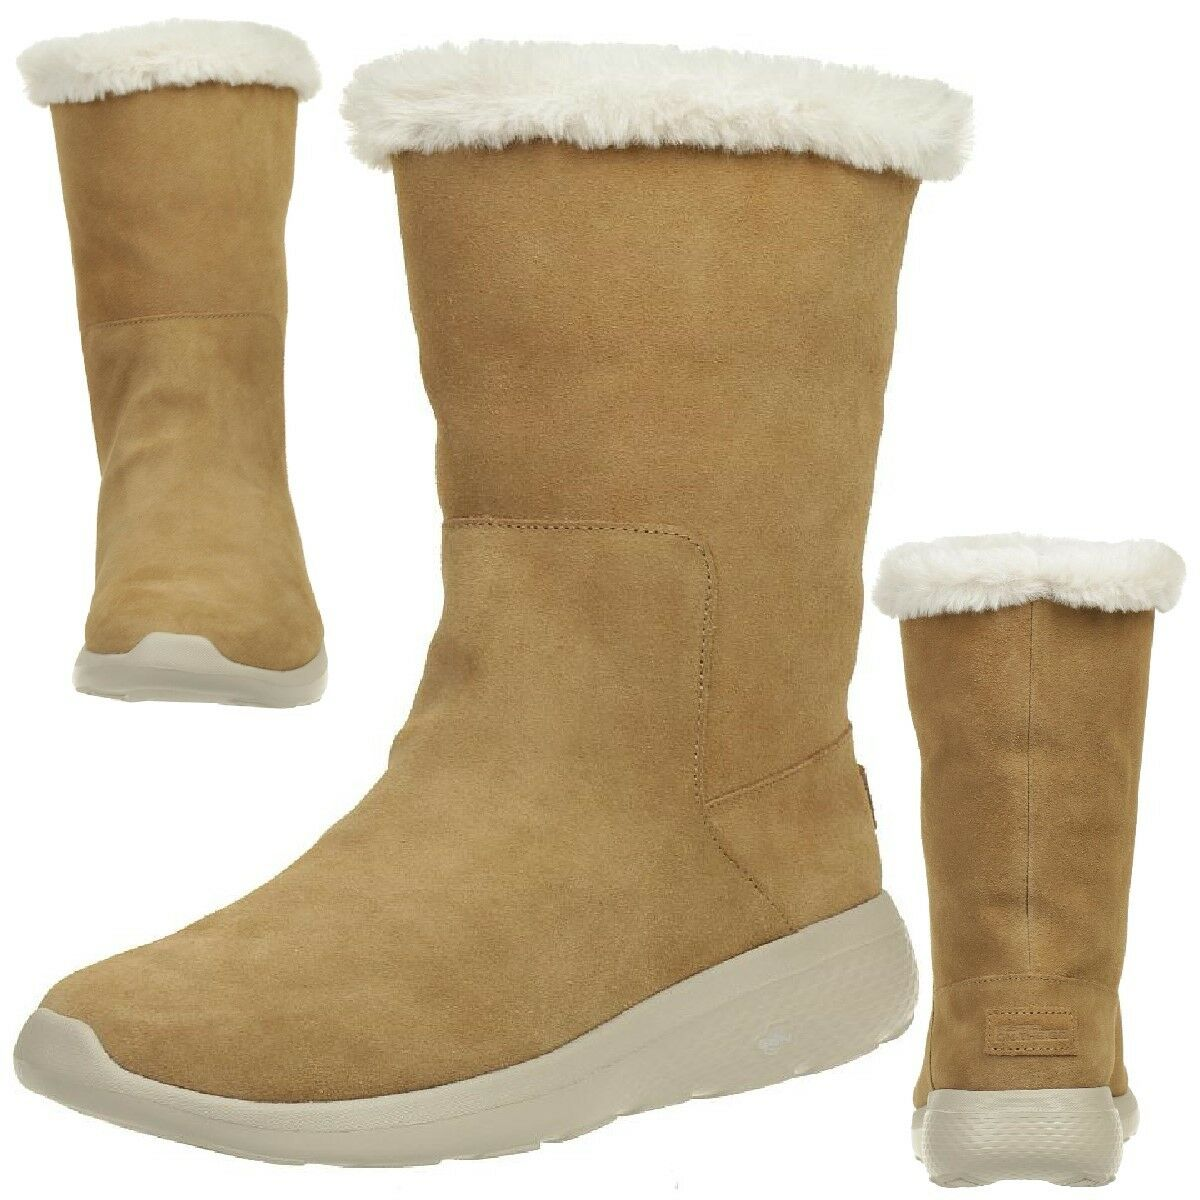 Skechers on the go City 2 appealing botas señora invierno zapatos forradas csnt